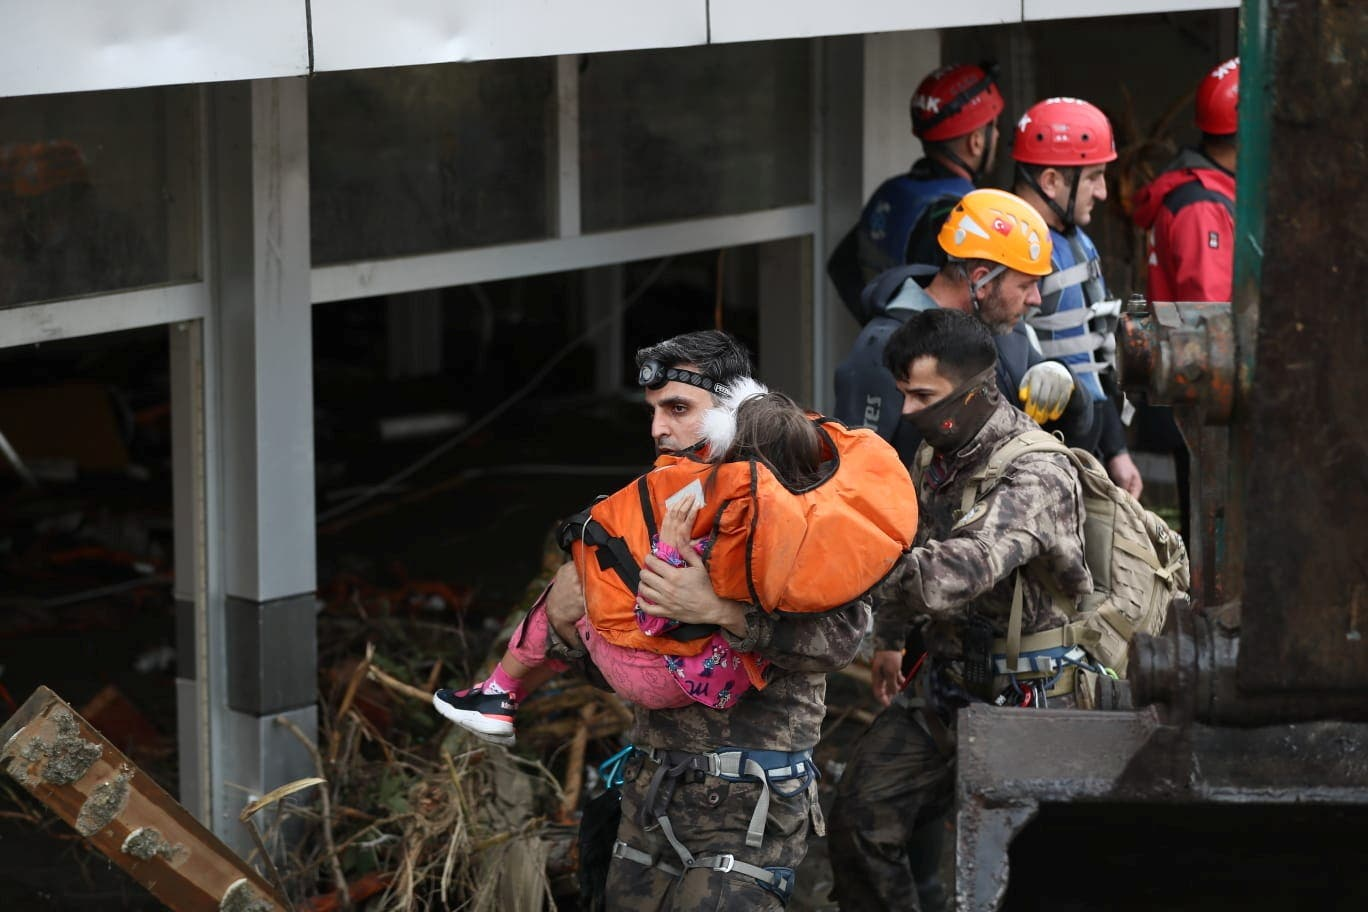 Search and Rescue team members evacuate a girl during flash floods which have swept through towns in the Turkish Black Sea region, in Bozkurt, a town in Kastamonu province, Turkey, August 12, 2021. (Reuters)